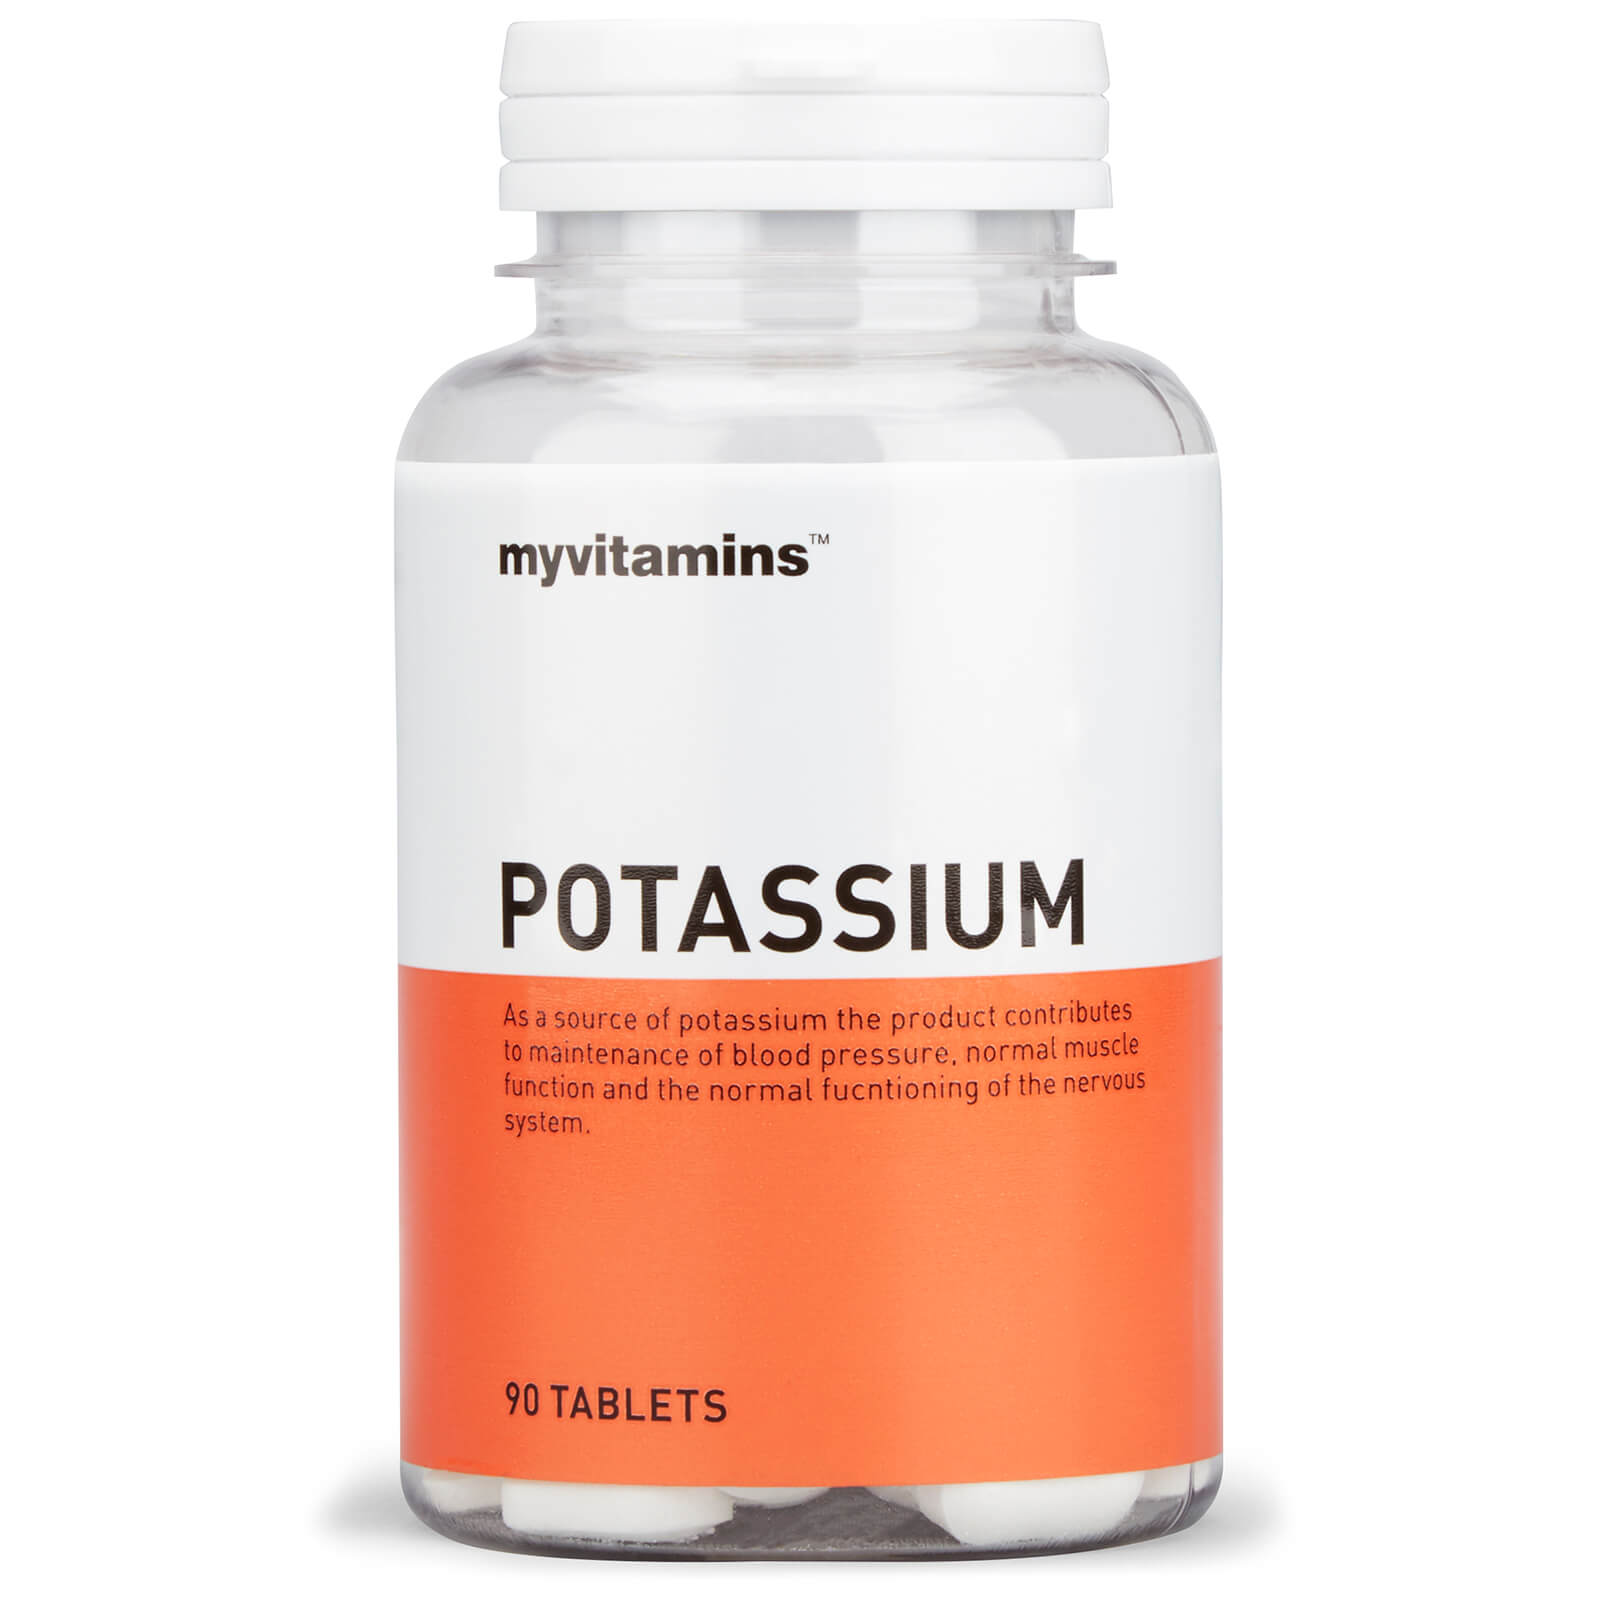 Myvitamins Potassium (90 Tablets) Myvitamins